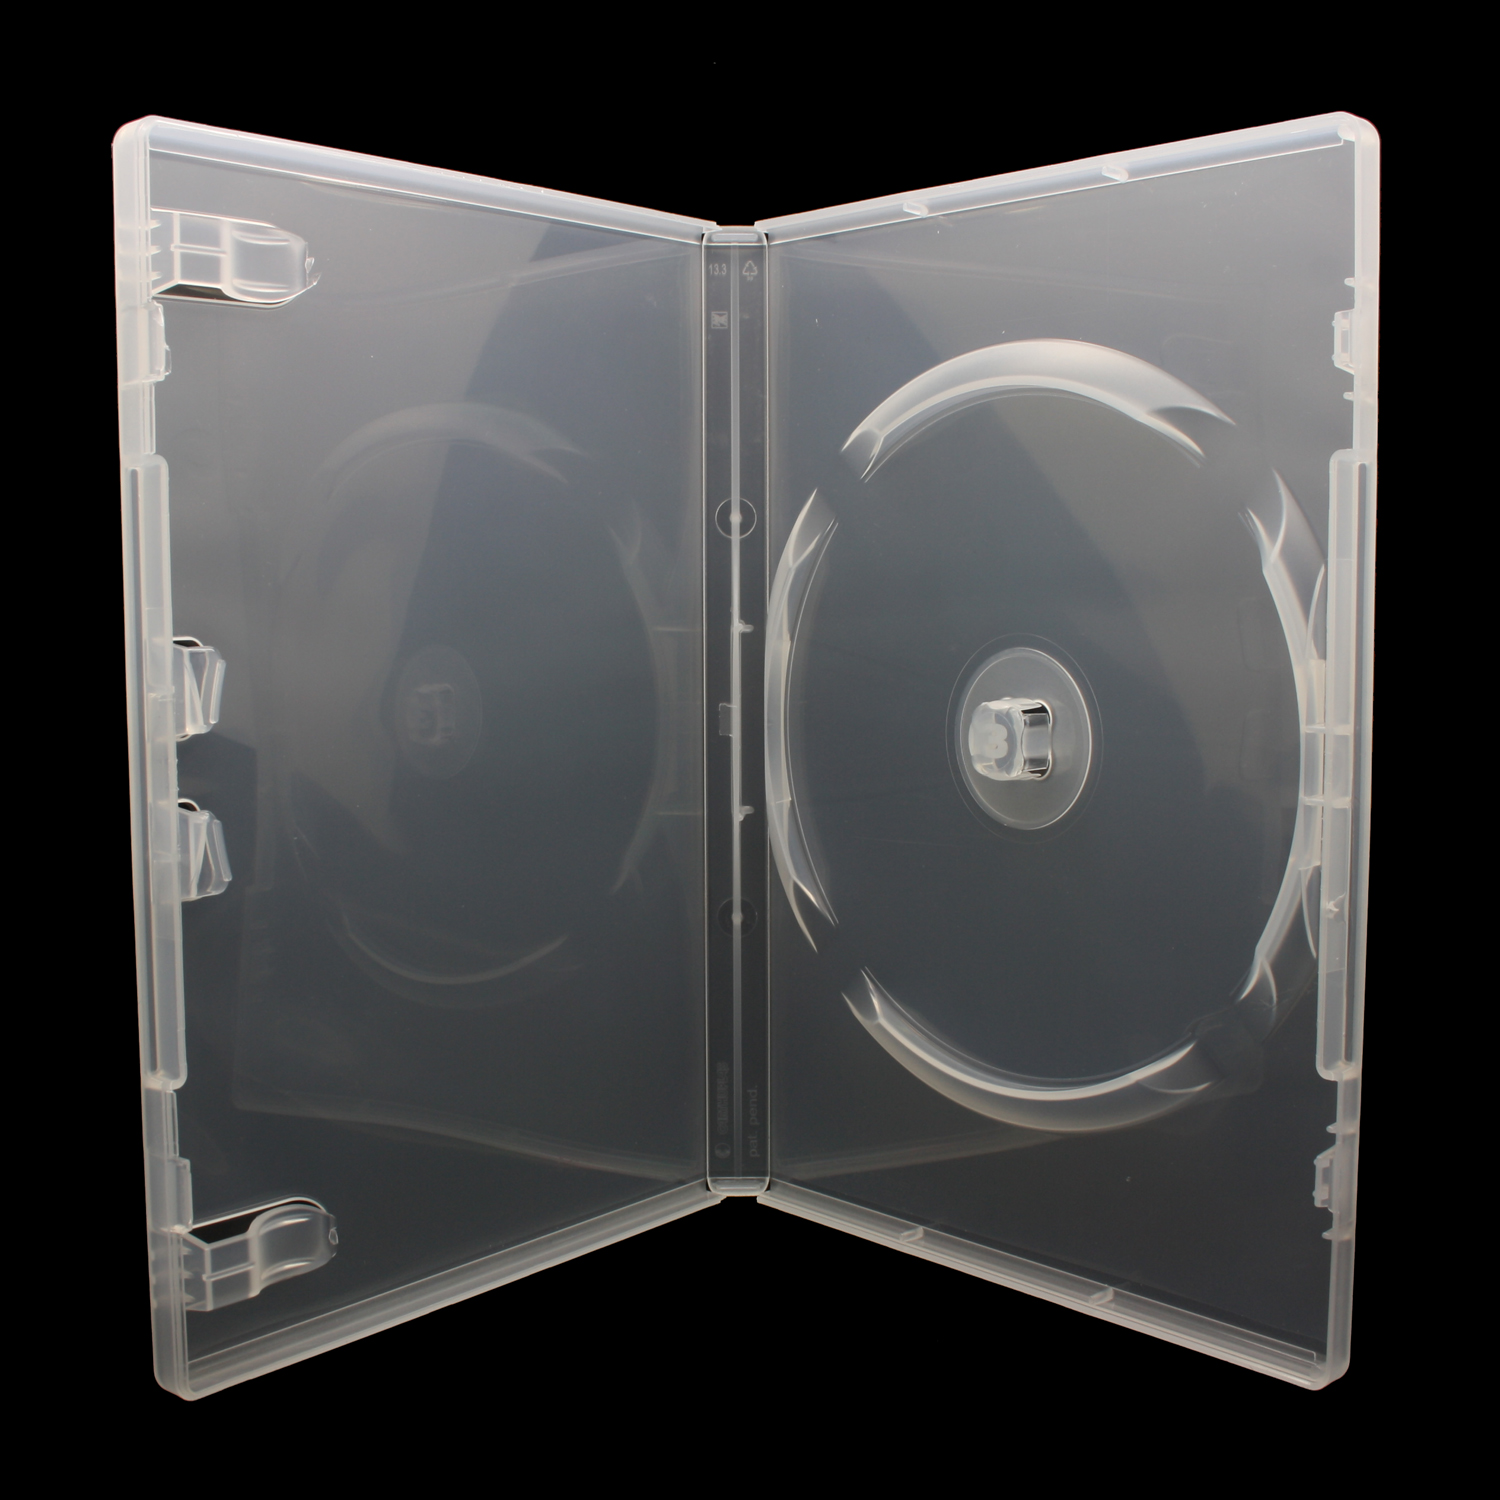 100 x FLEXBOX DVD Hüllen für 3 CD / DVD / Blu-Ray [14mm] Transparent